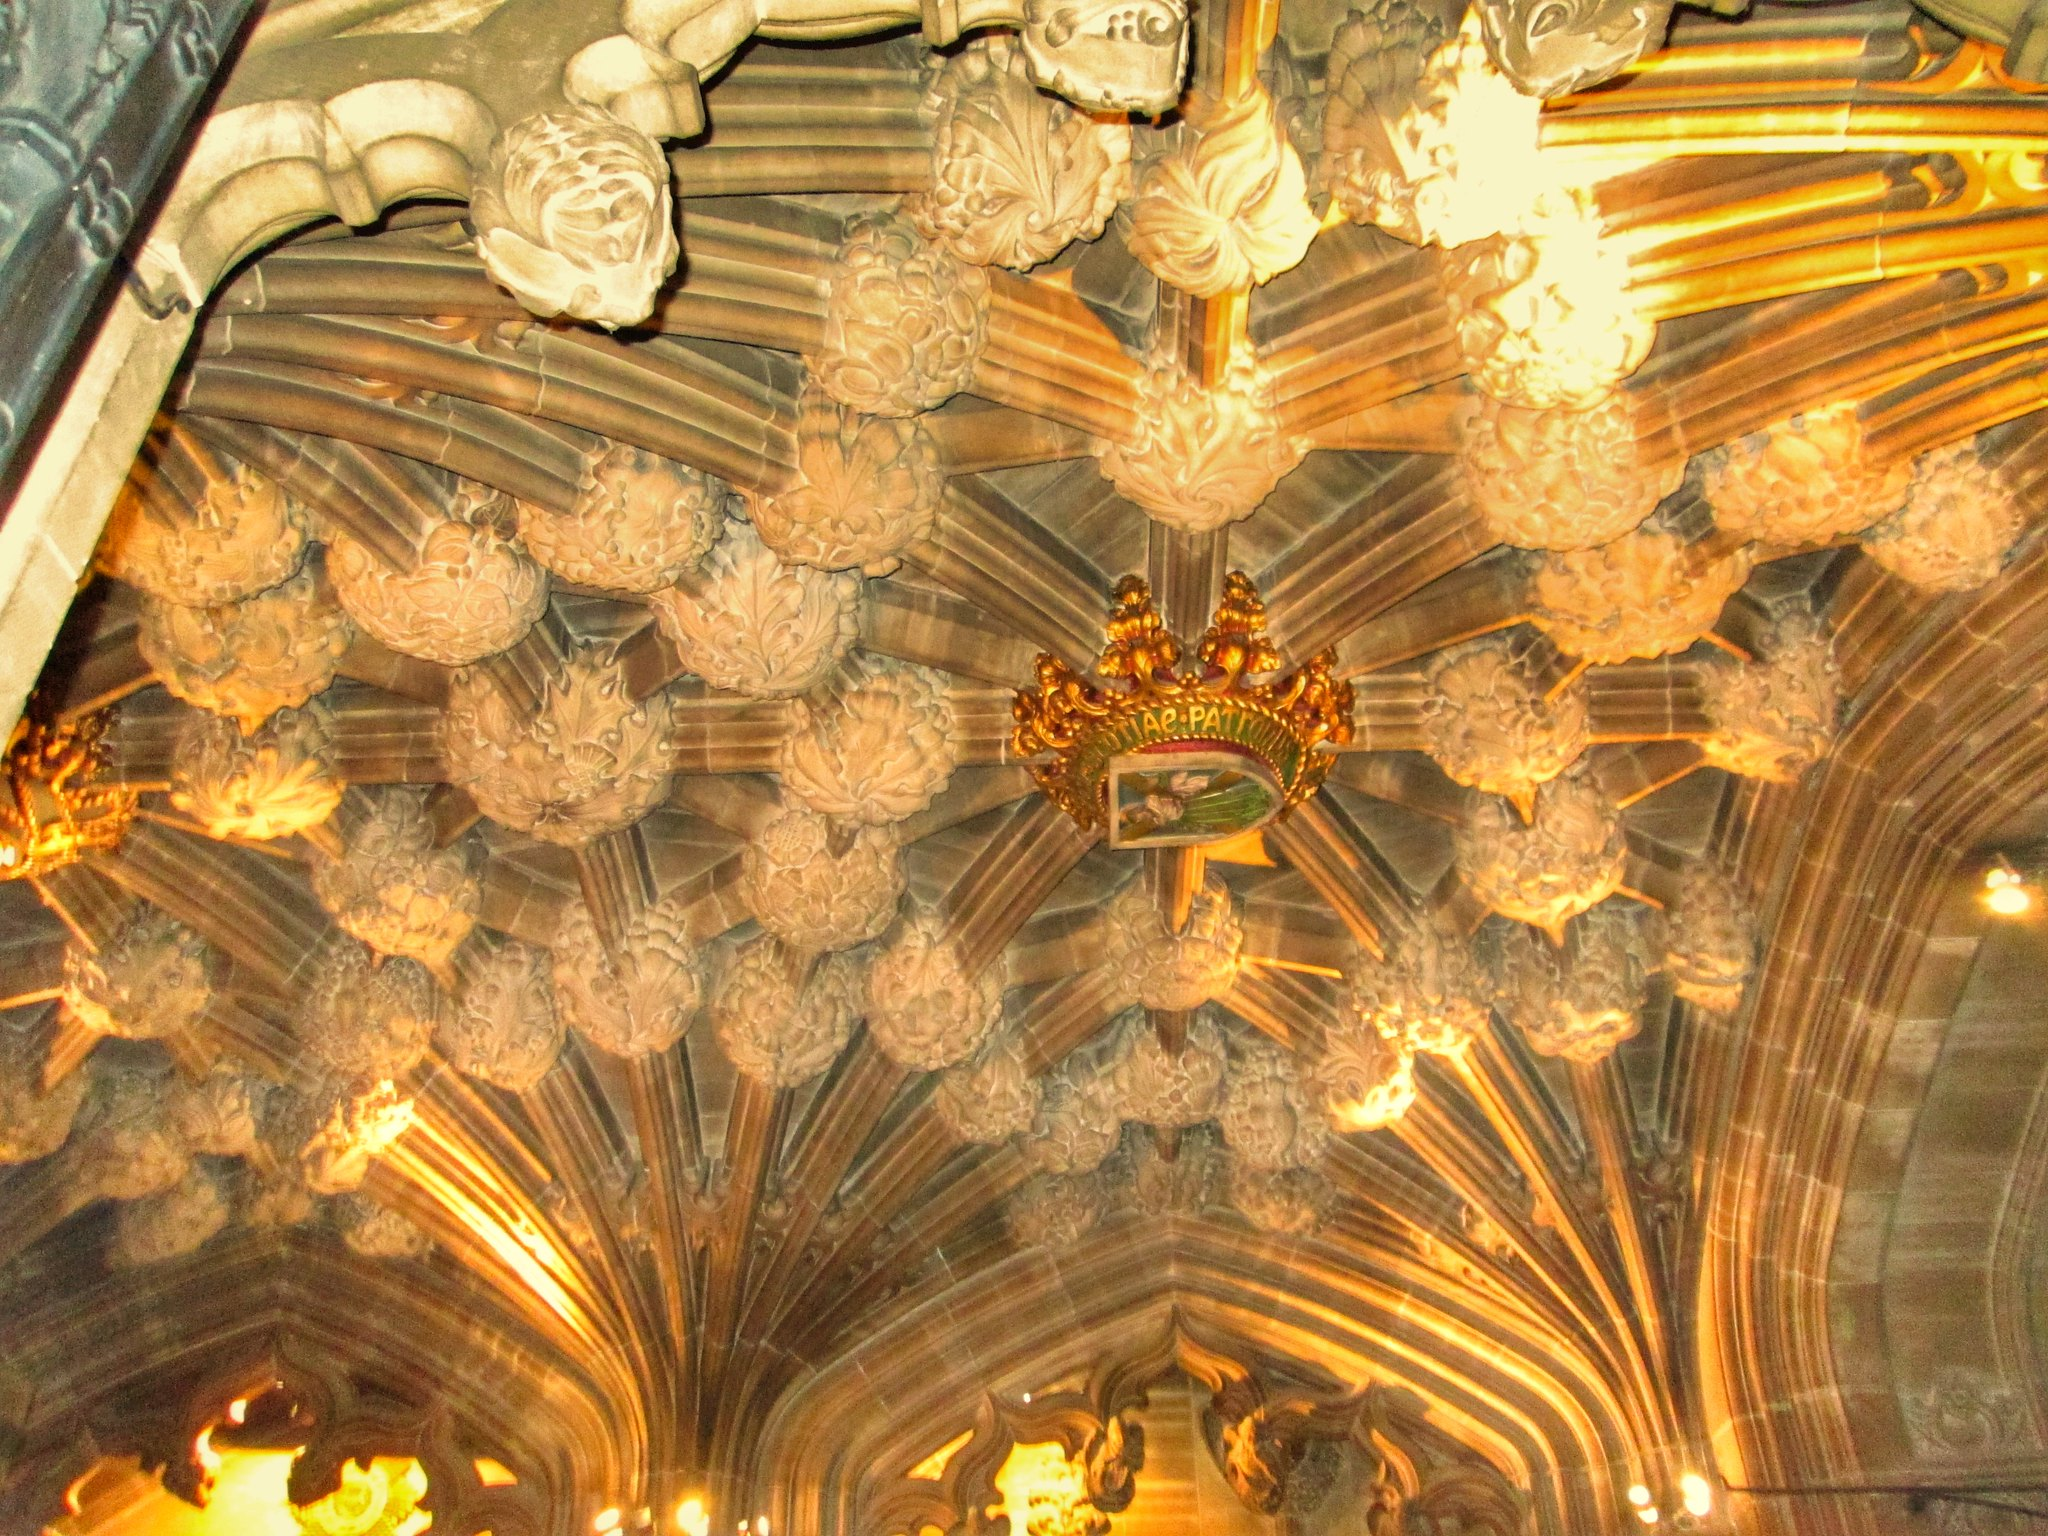 St Giles Cathedral Thistle Chapel ceiling